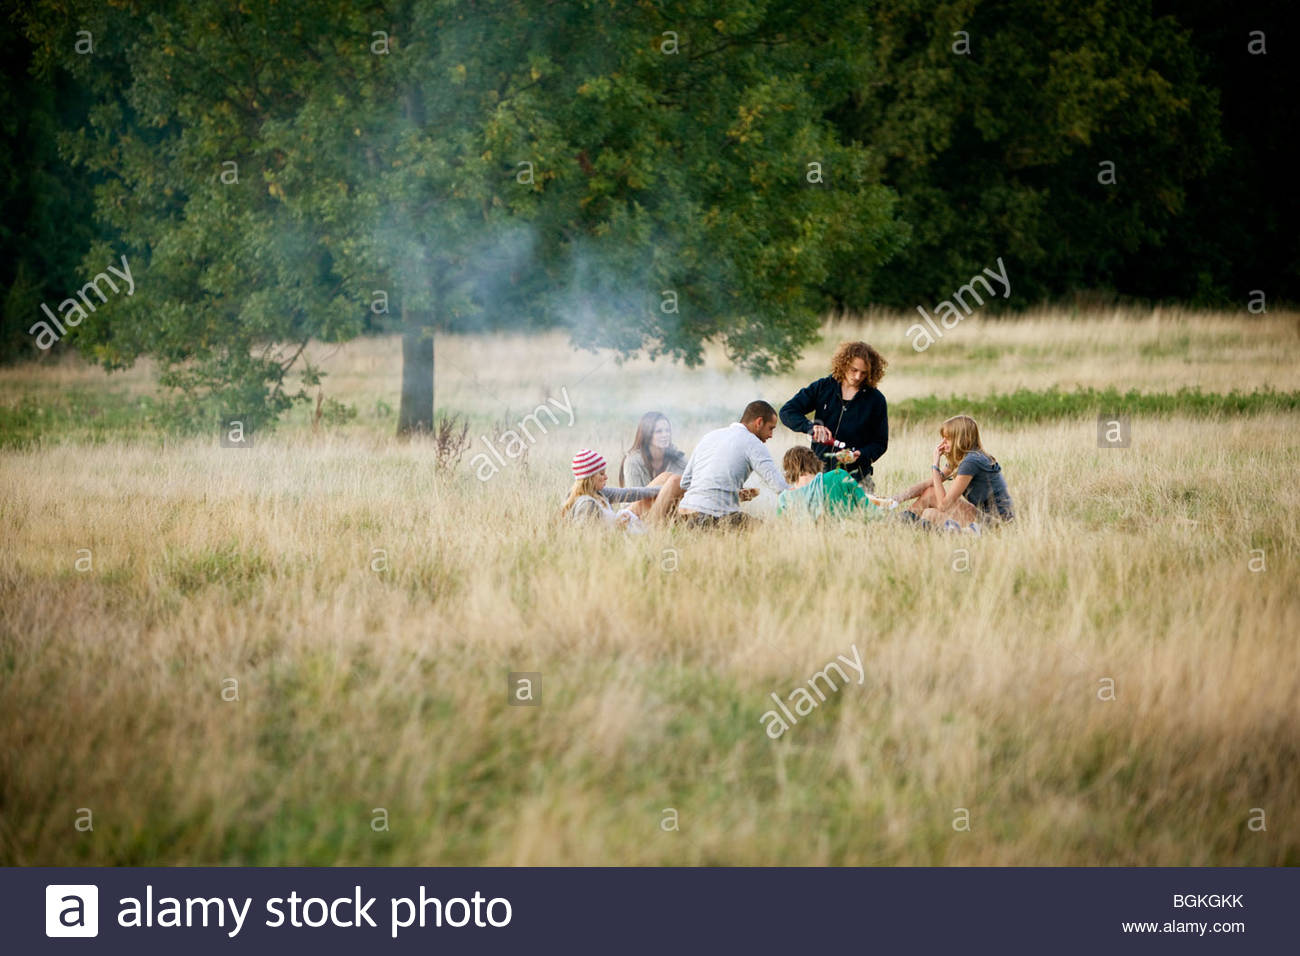 A group of young friends having a barbecue in a field - Stock Image